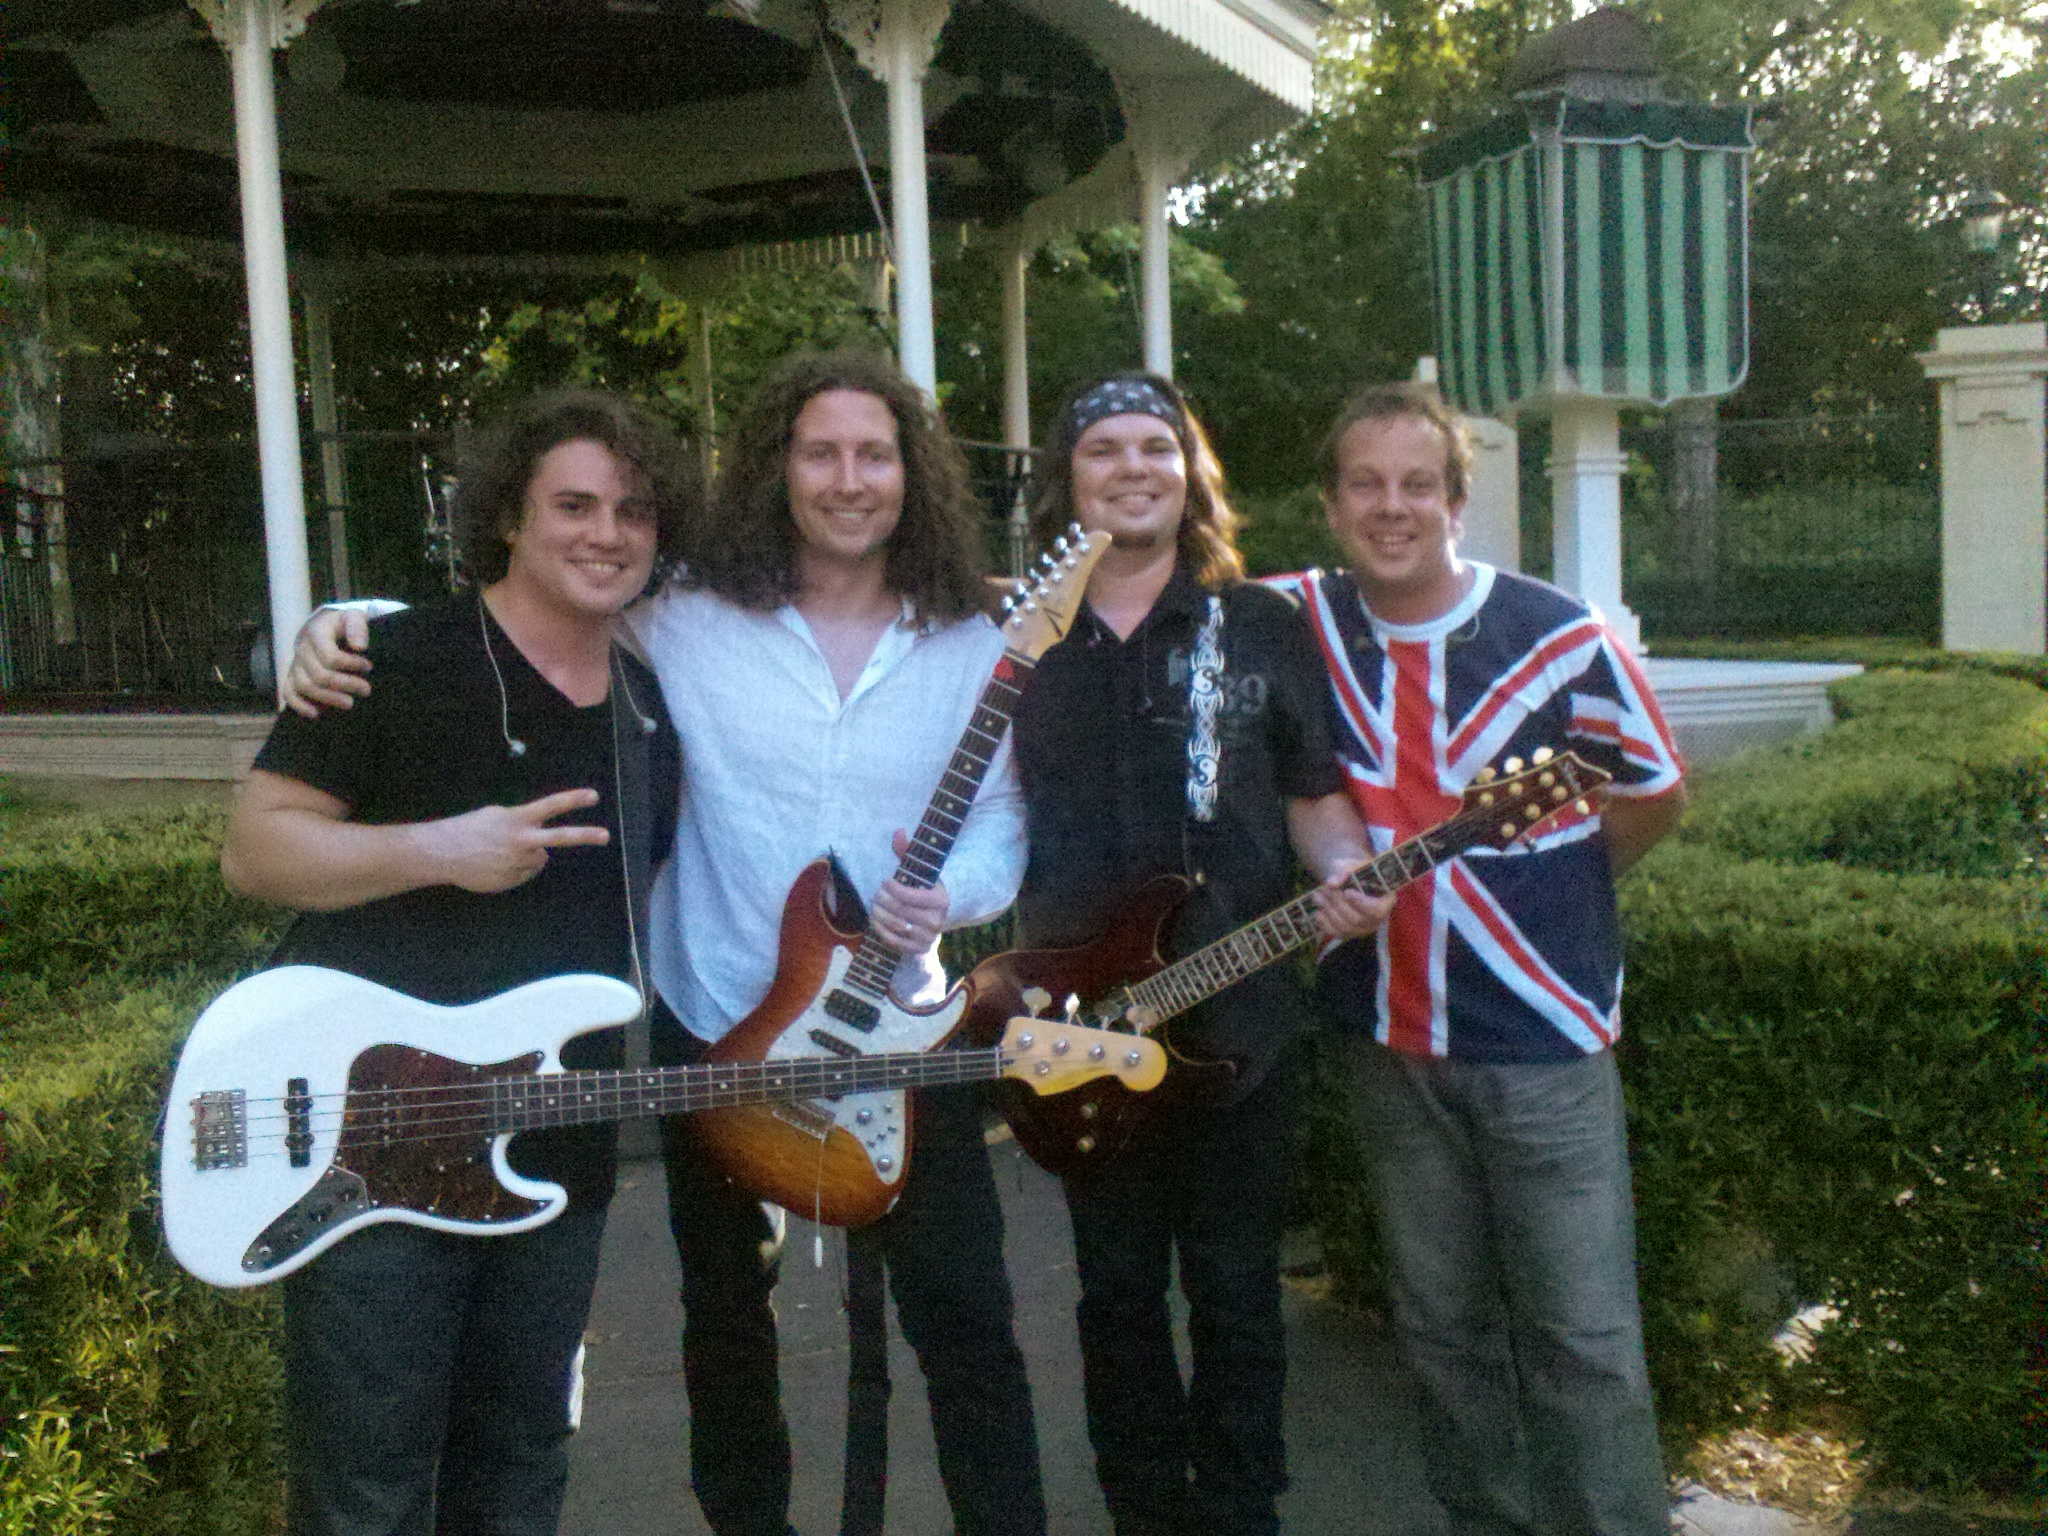 New UK Band in Epcot - English Channel